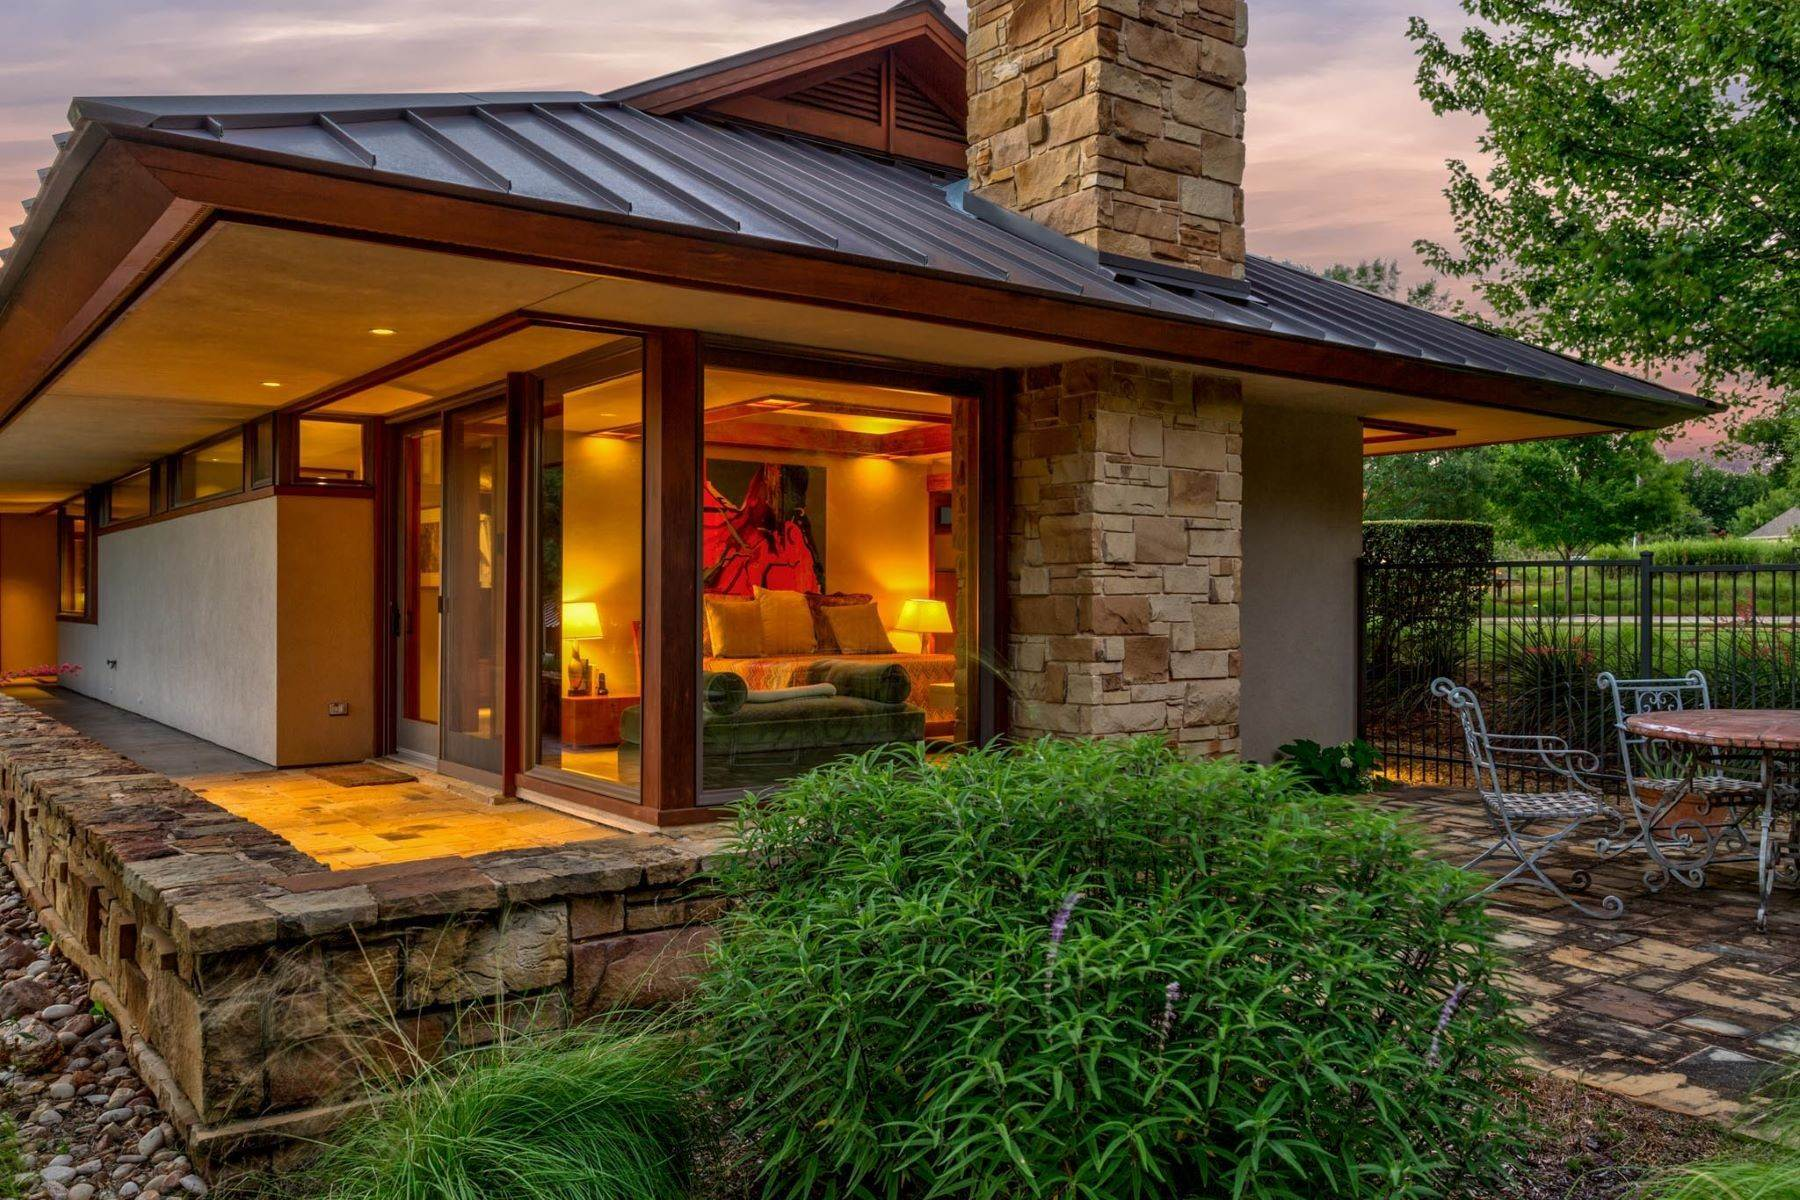 34. Single Family Homes for Sale at Sustainable Ranch Style Home with Mid-Century Flair 4808 Bill Simmons Road Colleyville, Texas 76034 United States